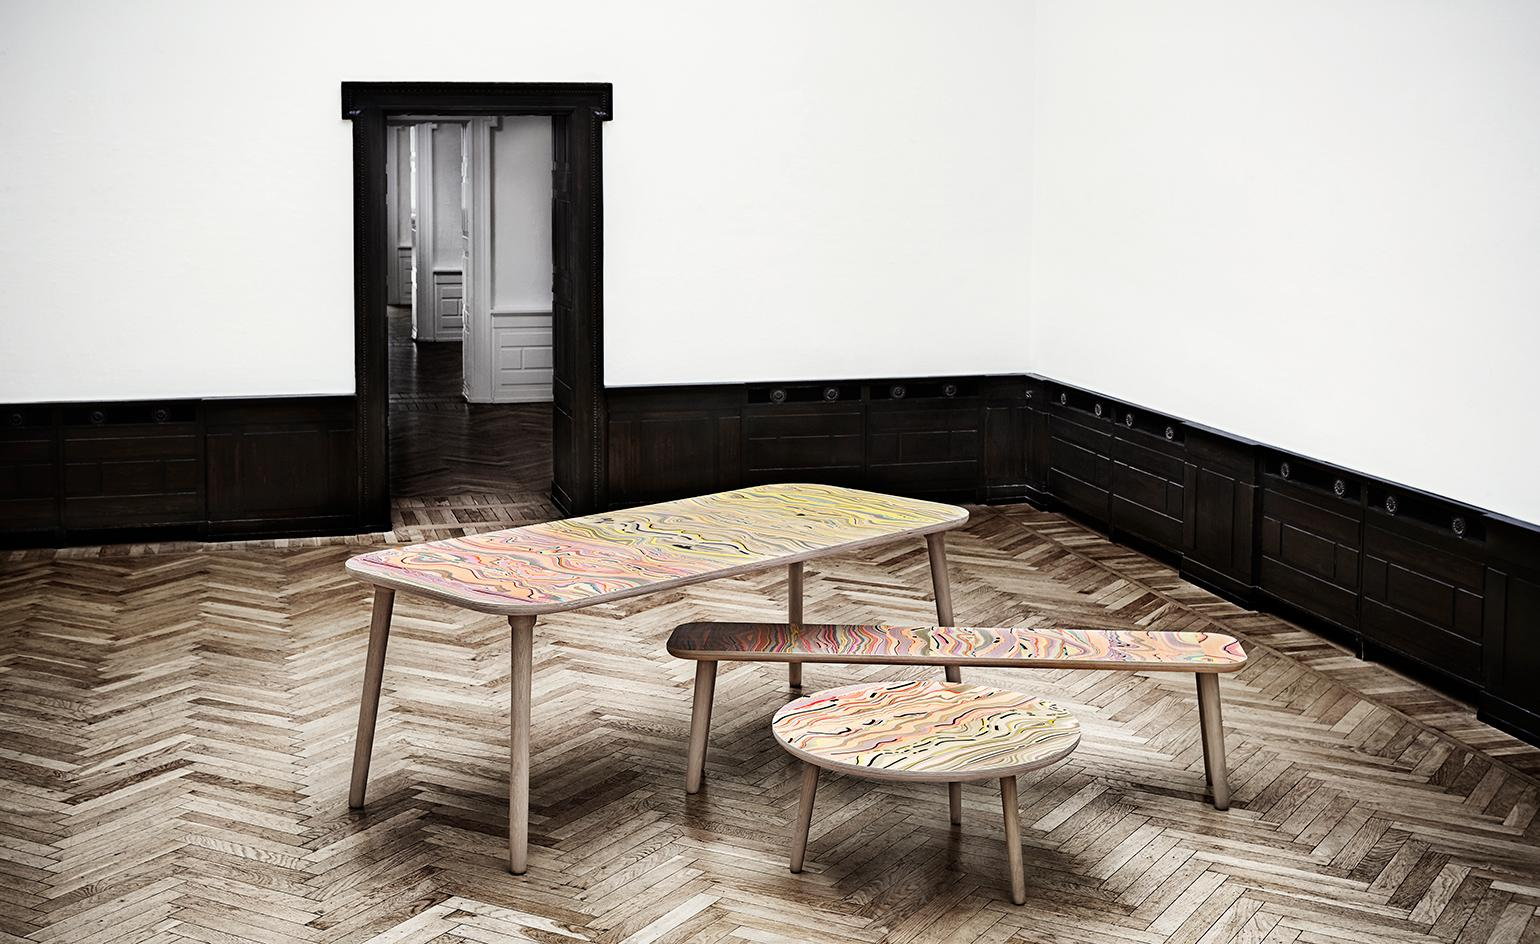 Marble masterpieces: Snedker Studio debuts new furniture collection